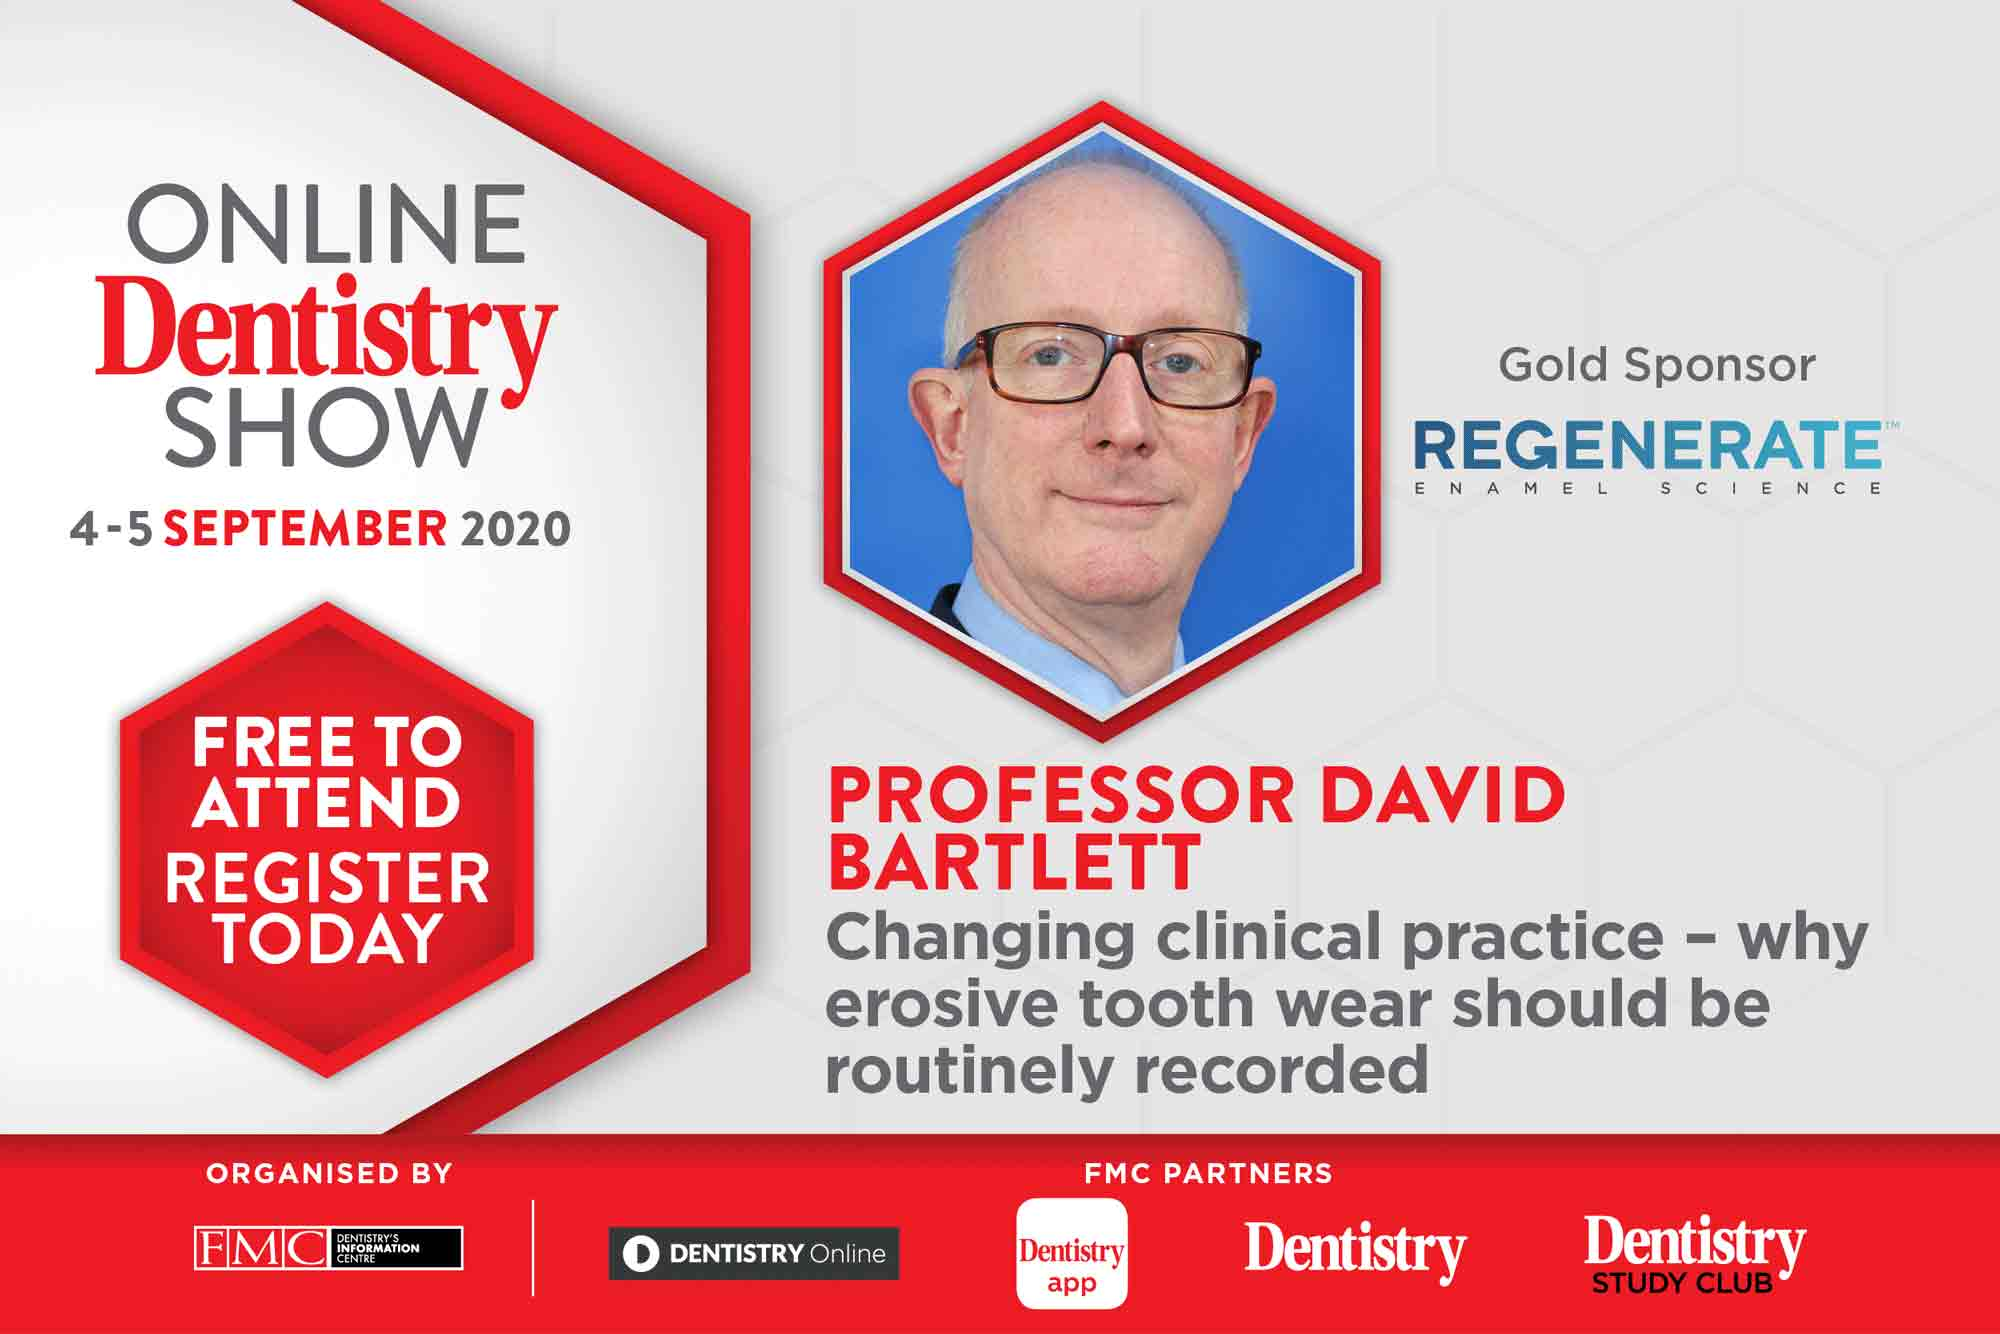 Coming this September, the Online Dentistry Show is putting on the very first virtual exhibition in UK dentistry with support from gold sponsors, Regenerate